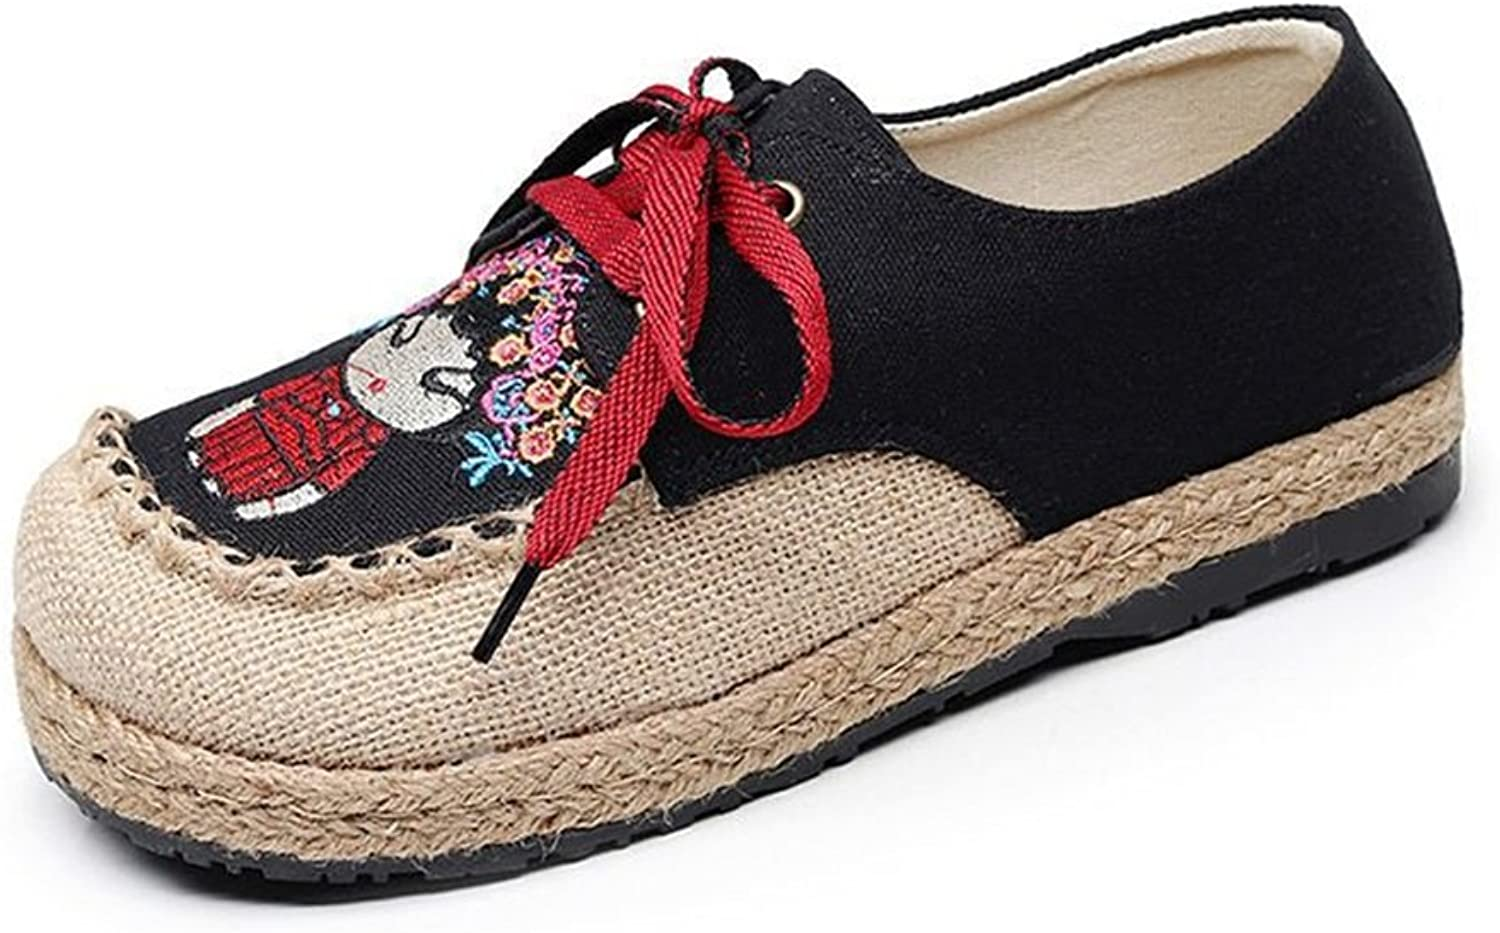 Womens's shoes Spring Summer New Linen Rounded Toe shoes Handmade Embroidery National Wind Espadrilles Hand-Woven Linen Lace-up Canvas Low-Top shoes